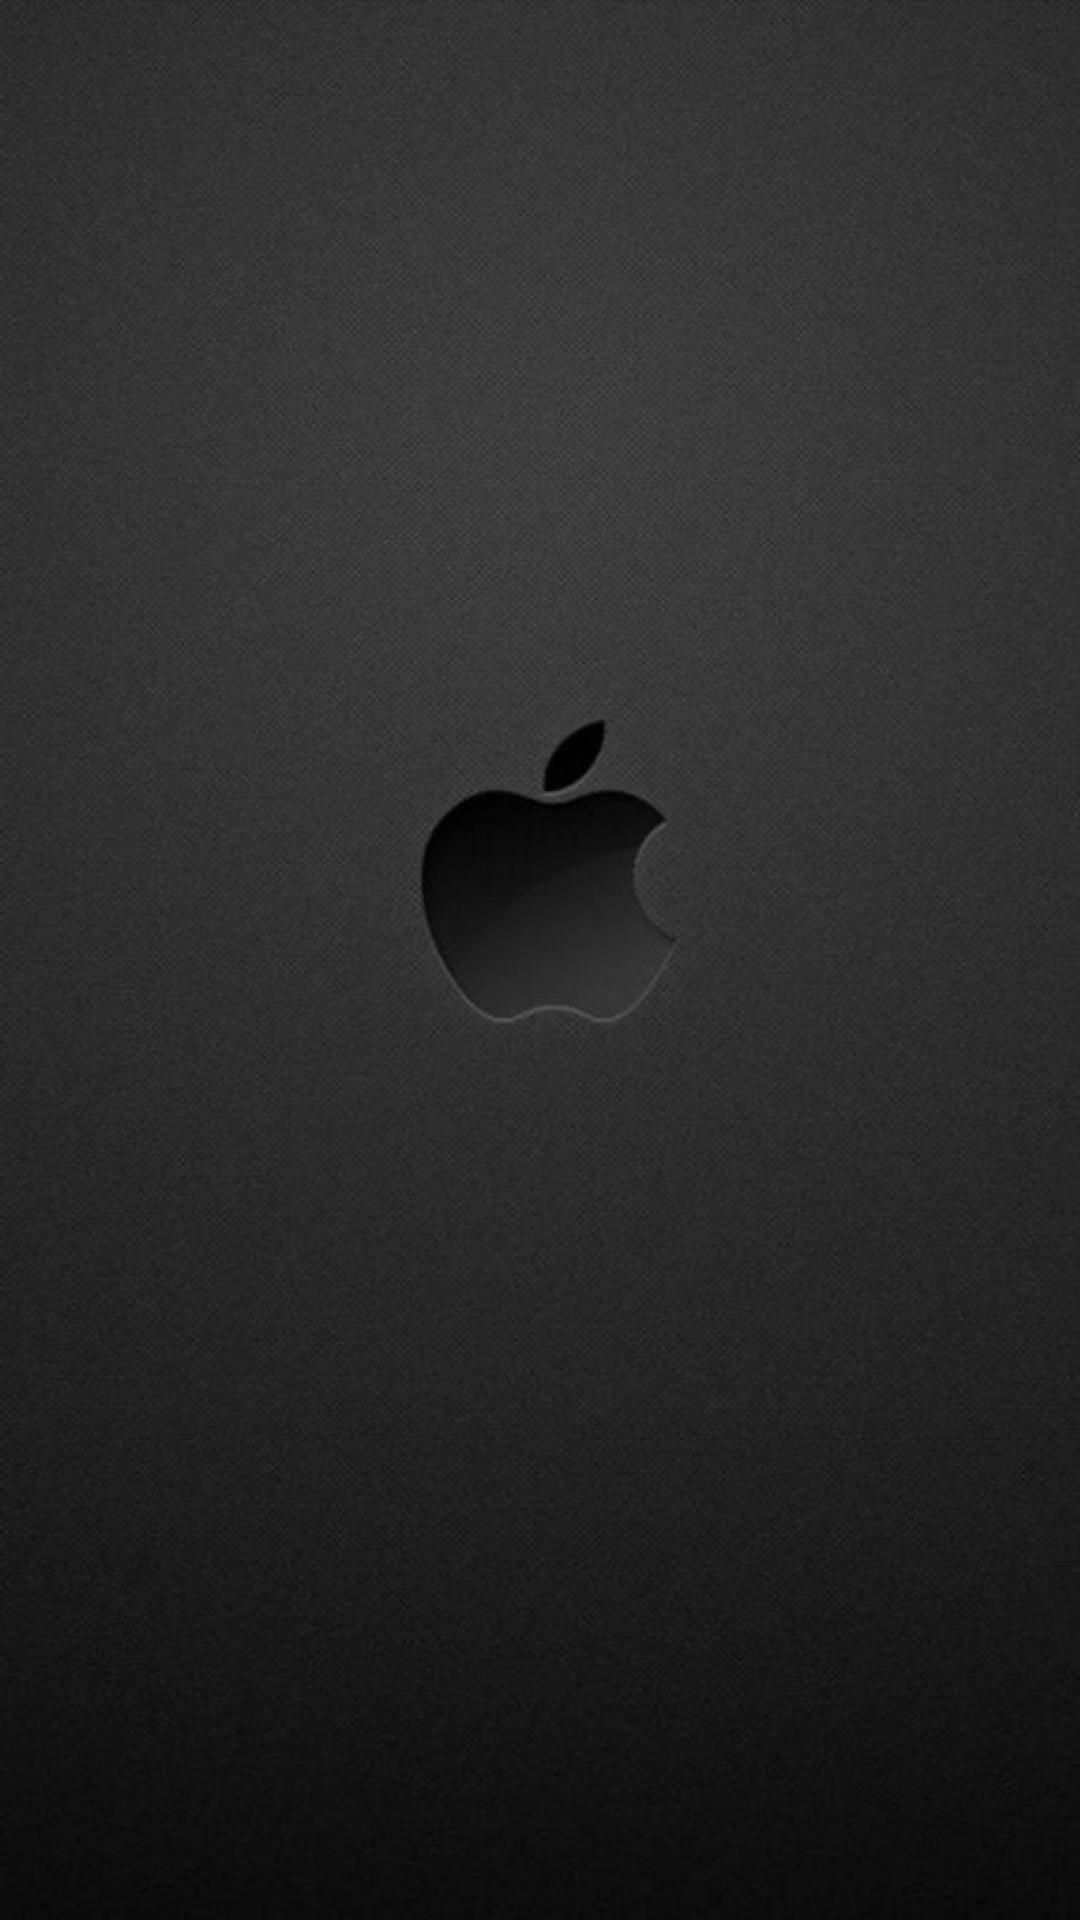 Pin By Omi Smith On 1 Black Wallpaper Iphone Apple Logo